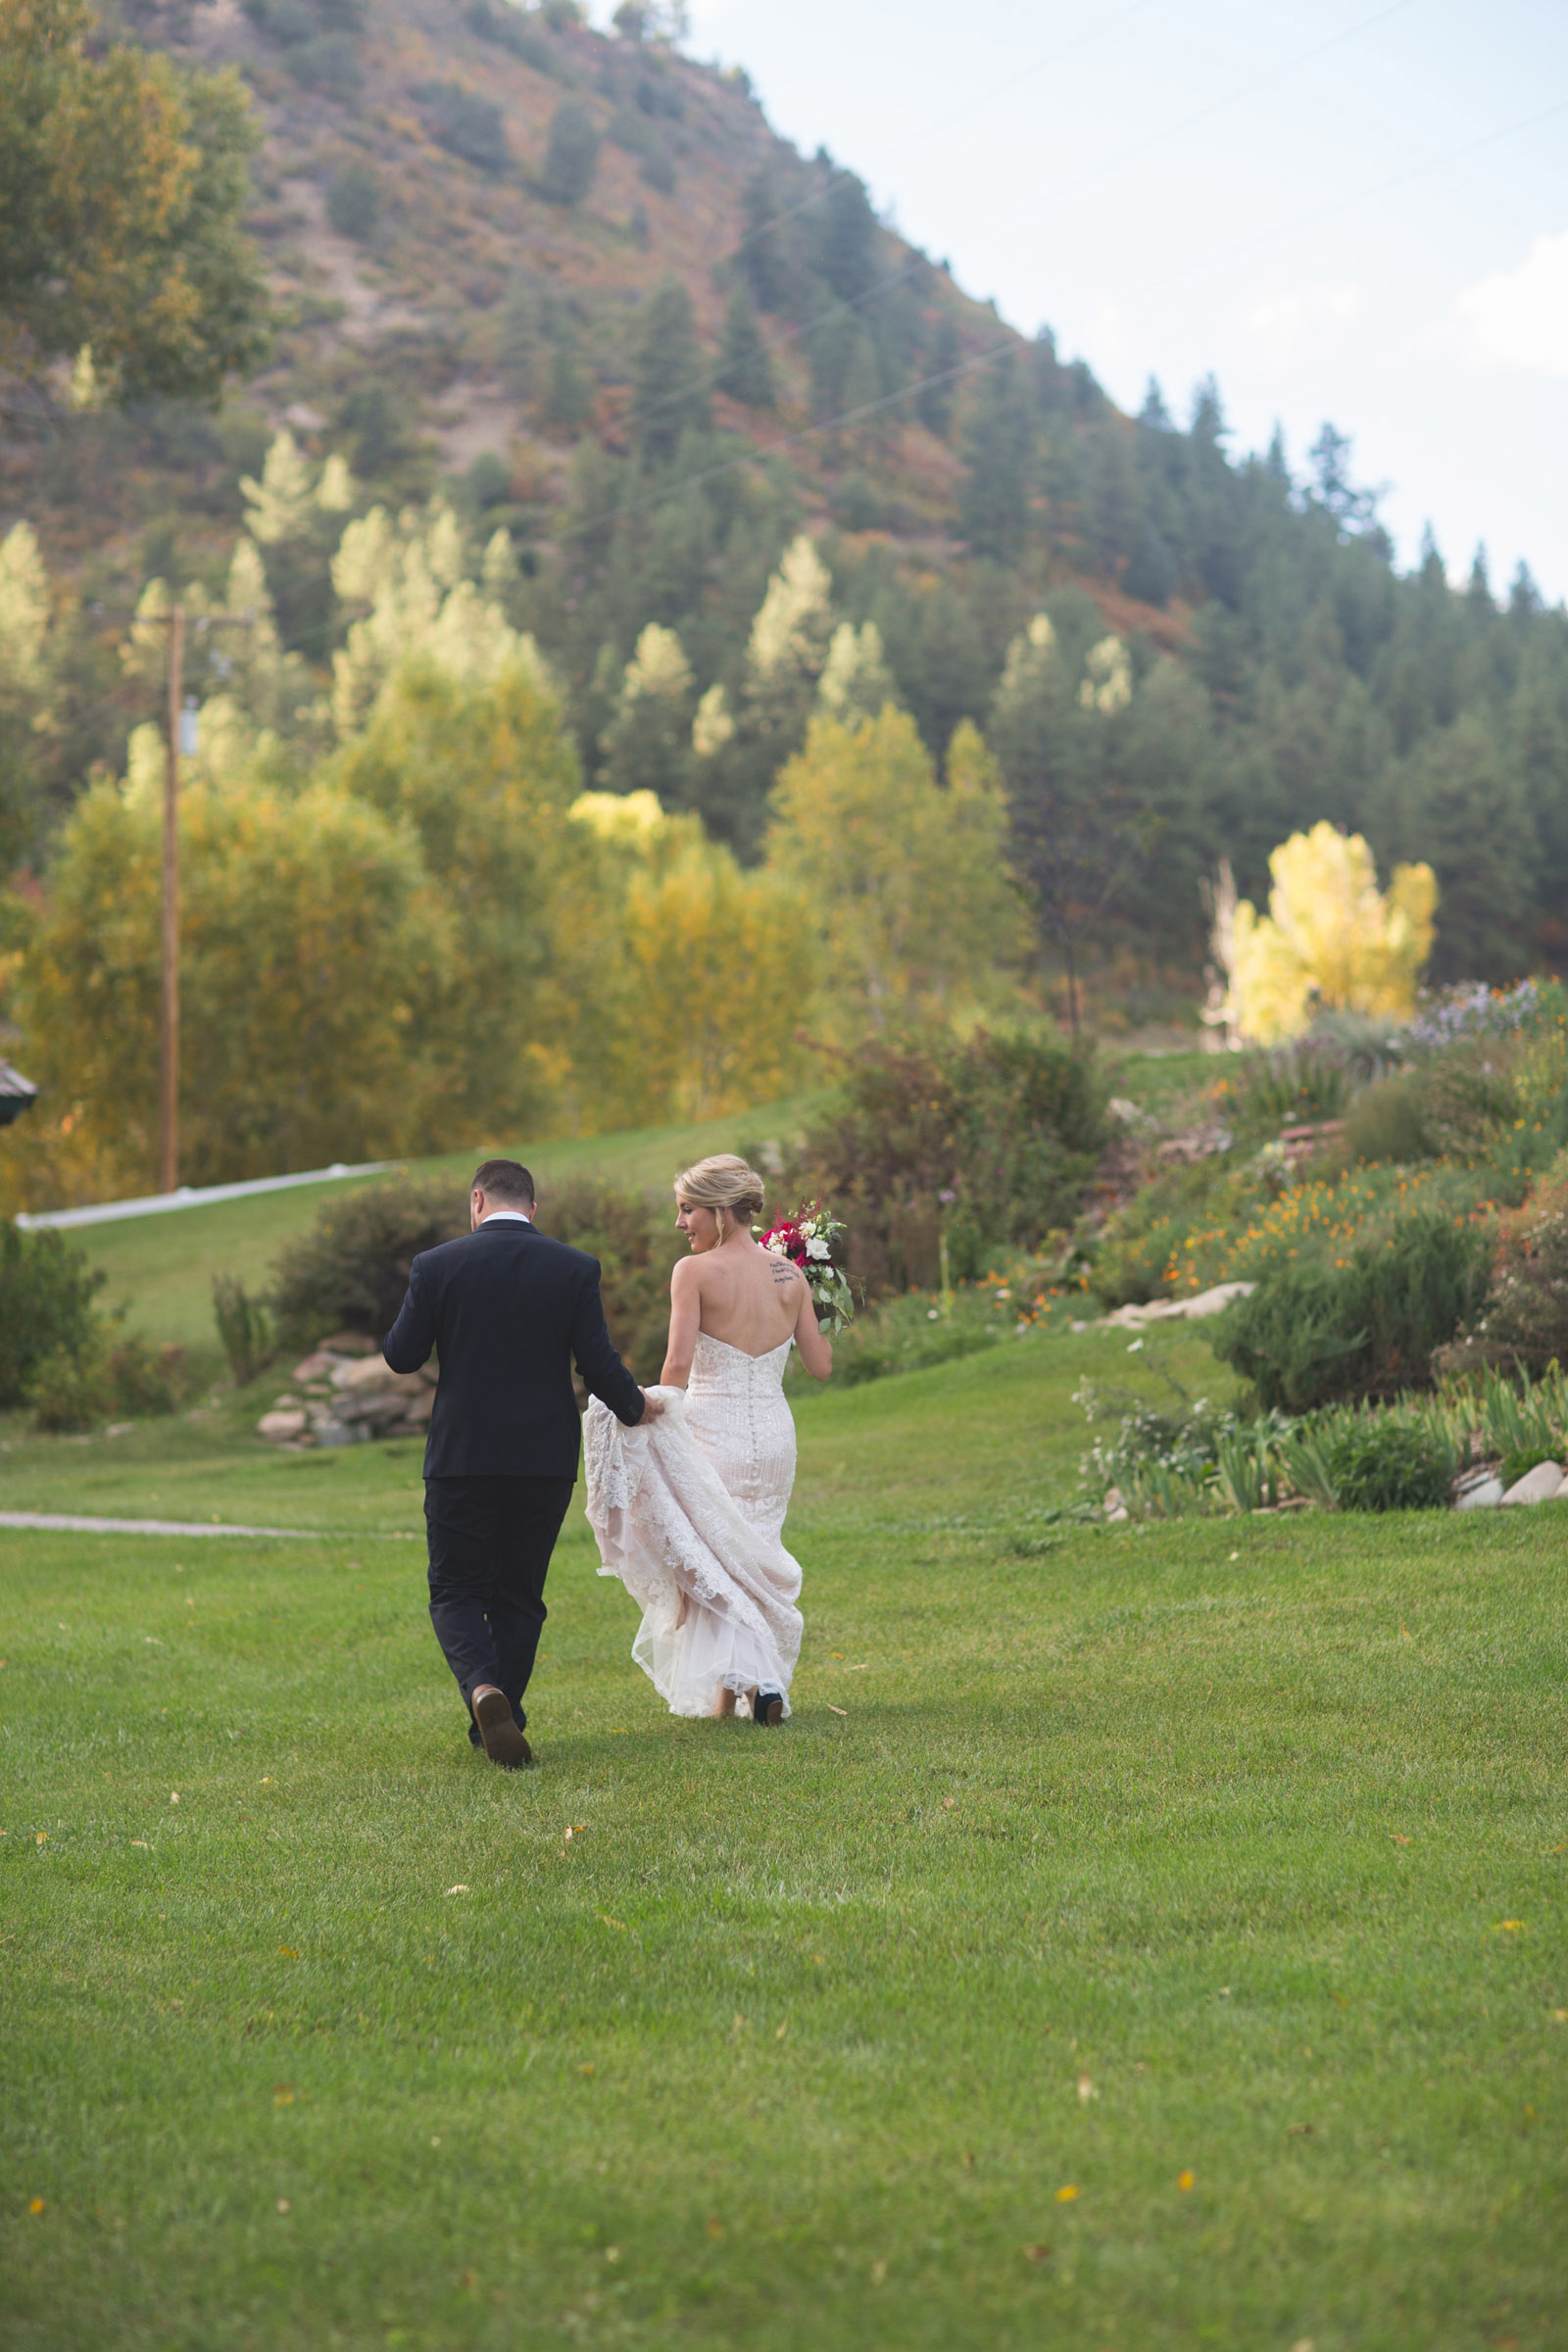 131-beautiful-bride-and-groom-photojournalist-portraits-at-elopement-wedding-in-durango-colorado-forest